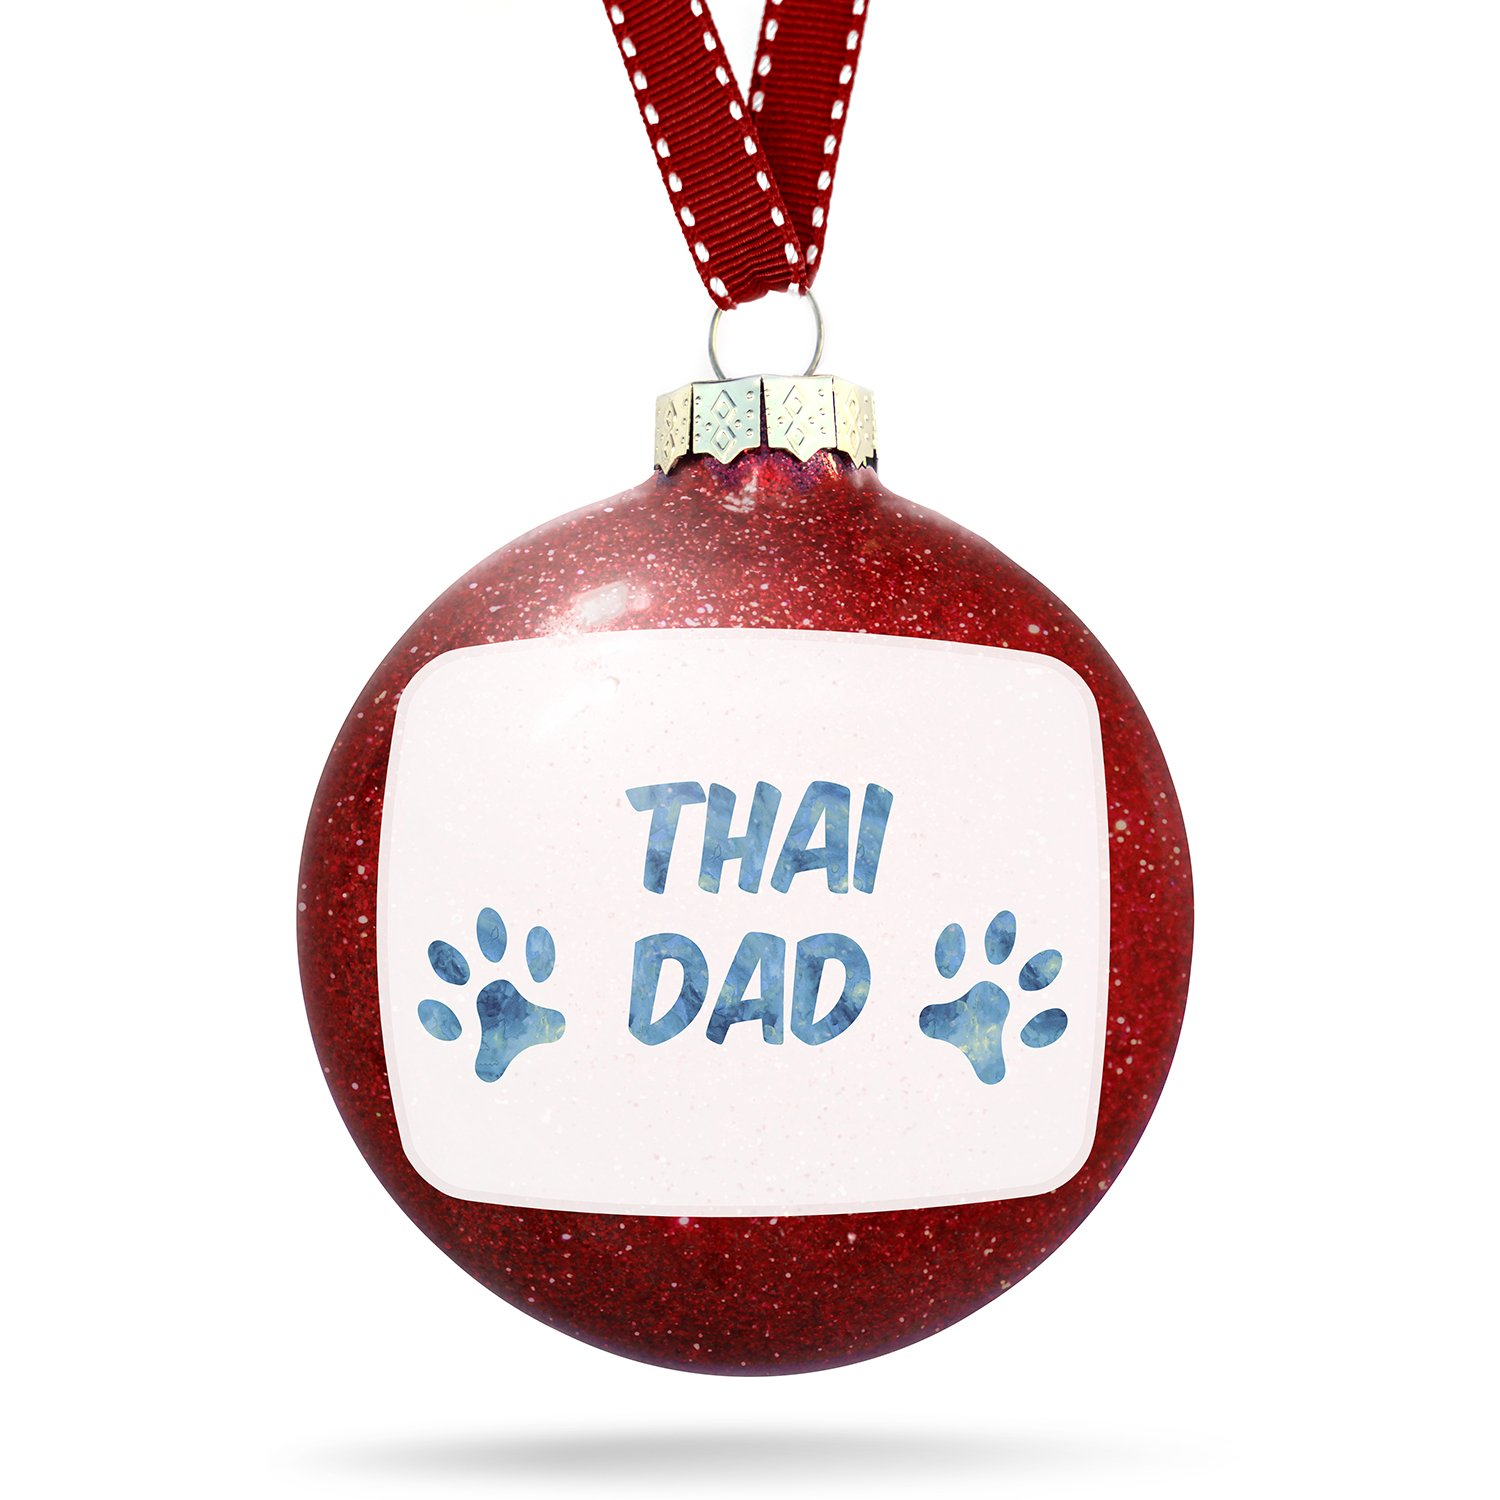 Christmas Decoration Dog & Cat Dad Thai Ornament by NEONBLOND